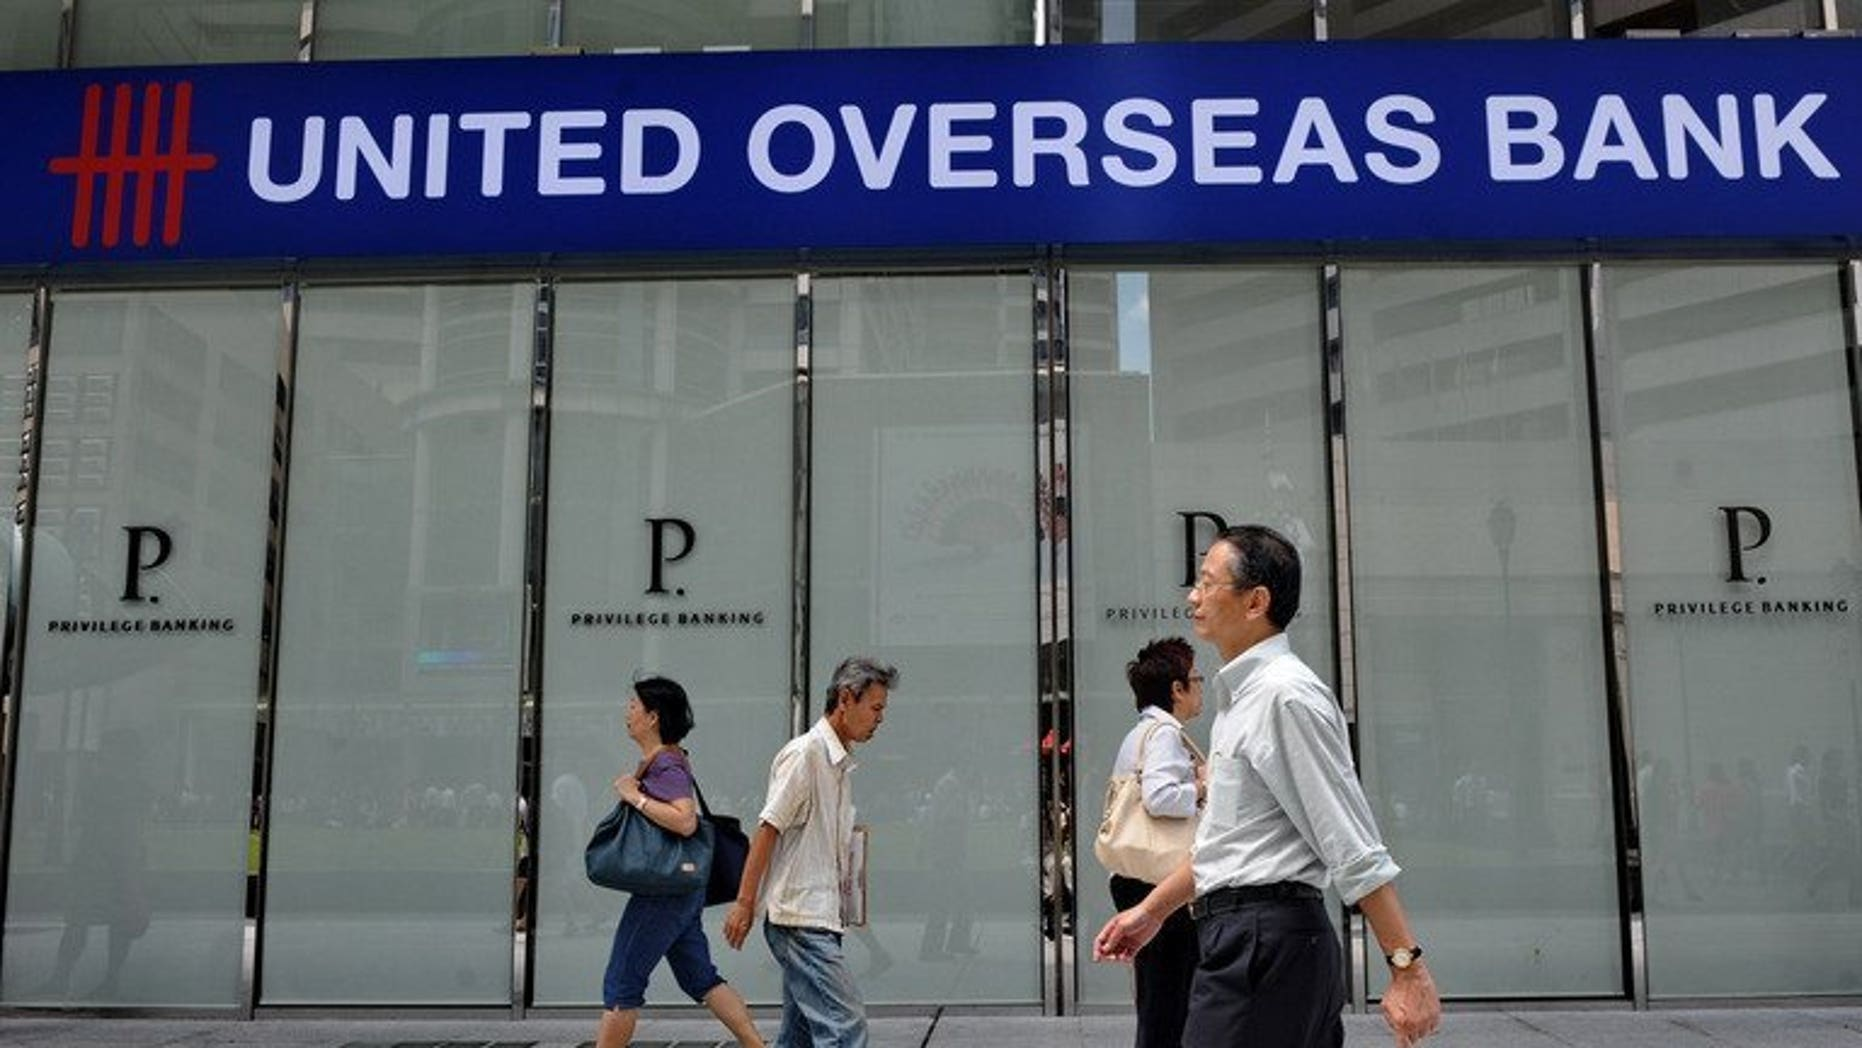 """People walk past an outlet of United Overseas Bank during lunch hour in Singapore on February 9, 2012. Credit rating agency Moody's on Monday downgraded the outlook of Singapore's three main banks -- DBS Bank, Oversea-Chinese Banking Corp. and United Overseas Bank -- to """"negative"""" from """"stable"""" amid rising property prices and mounting household debt in the city-state."""